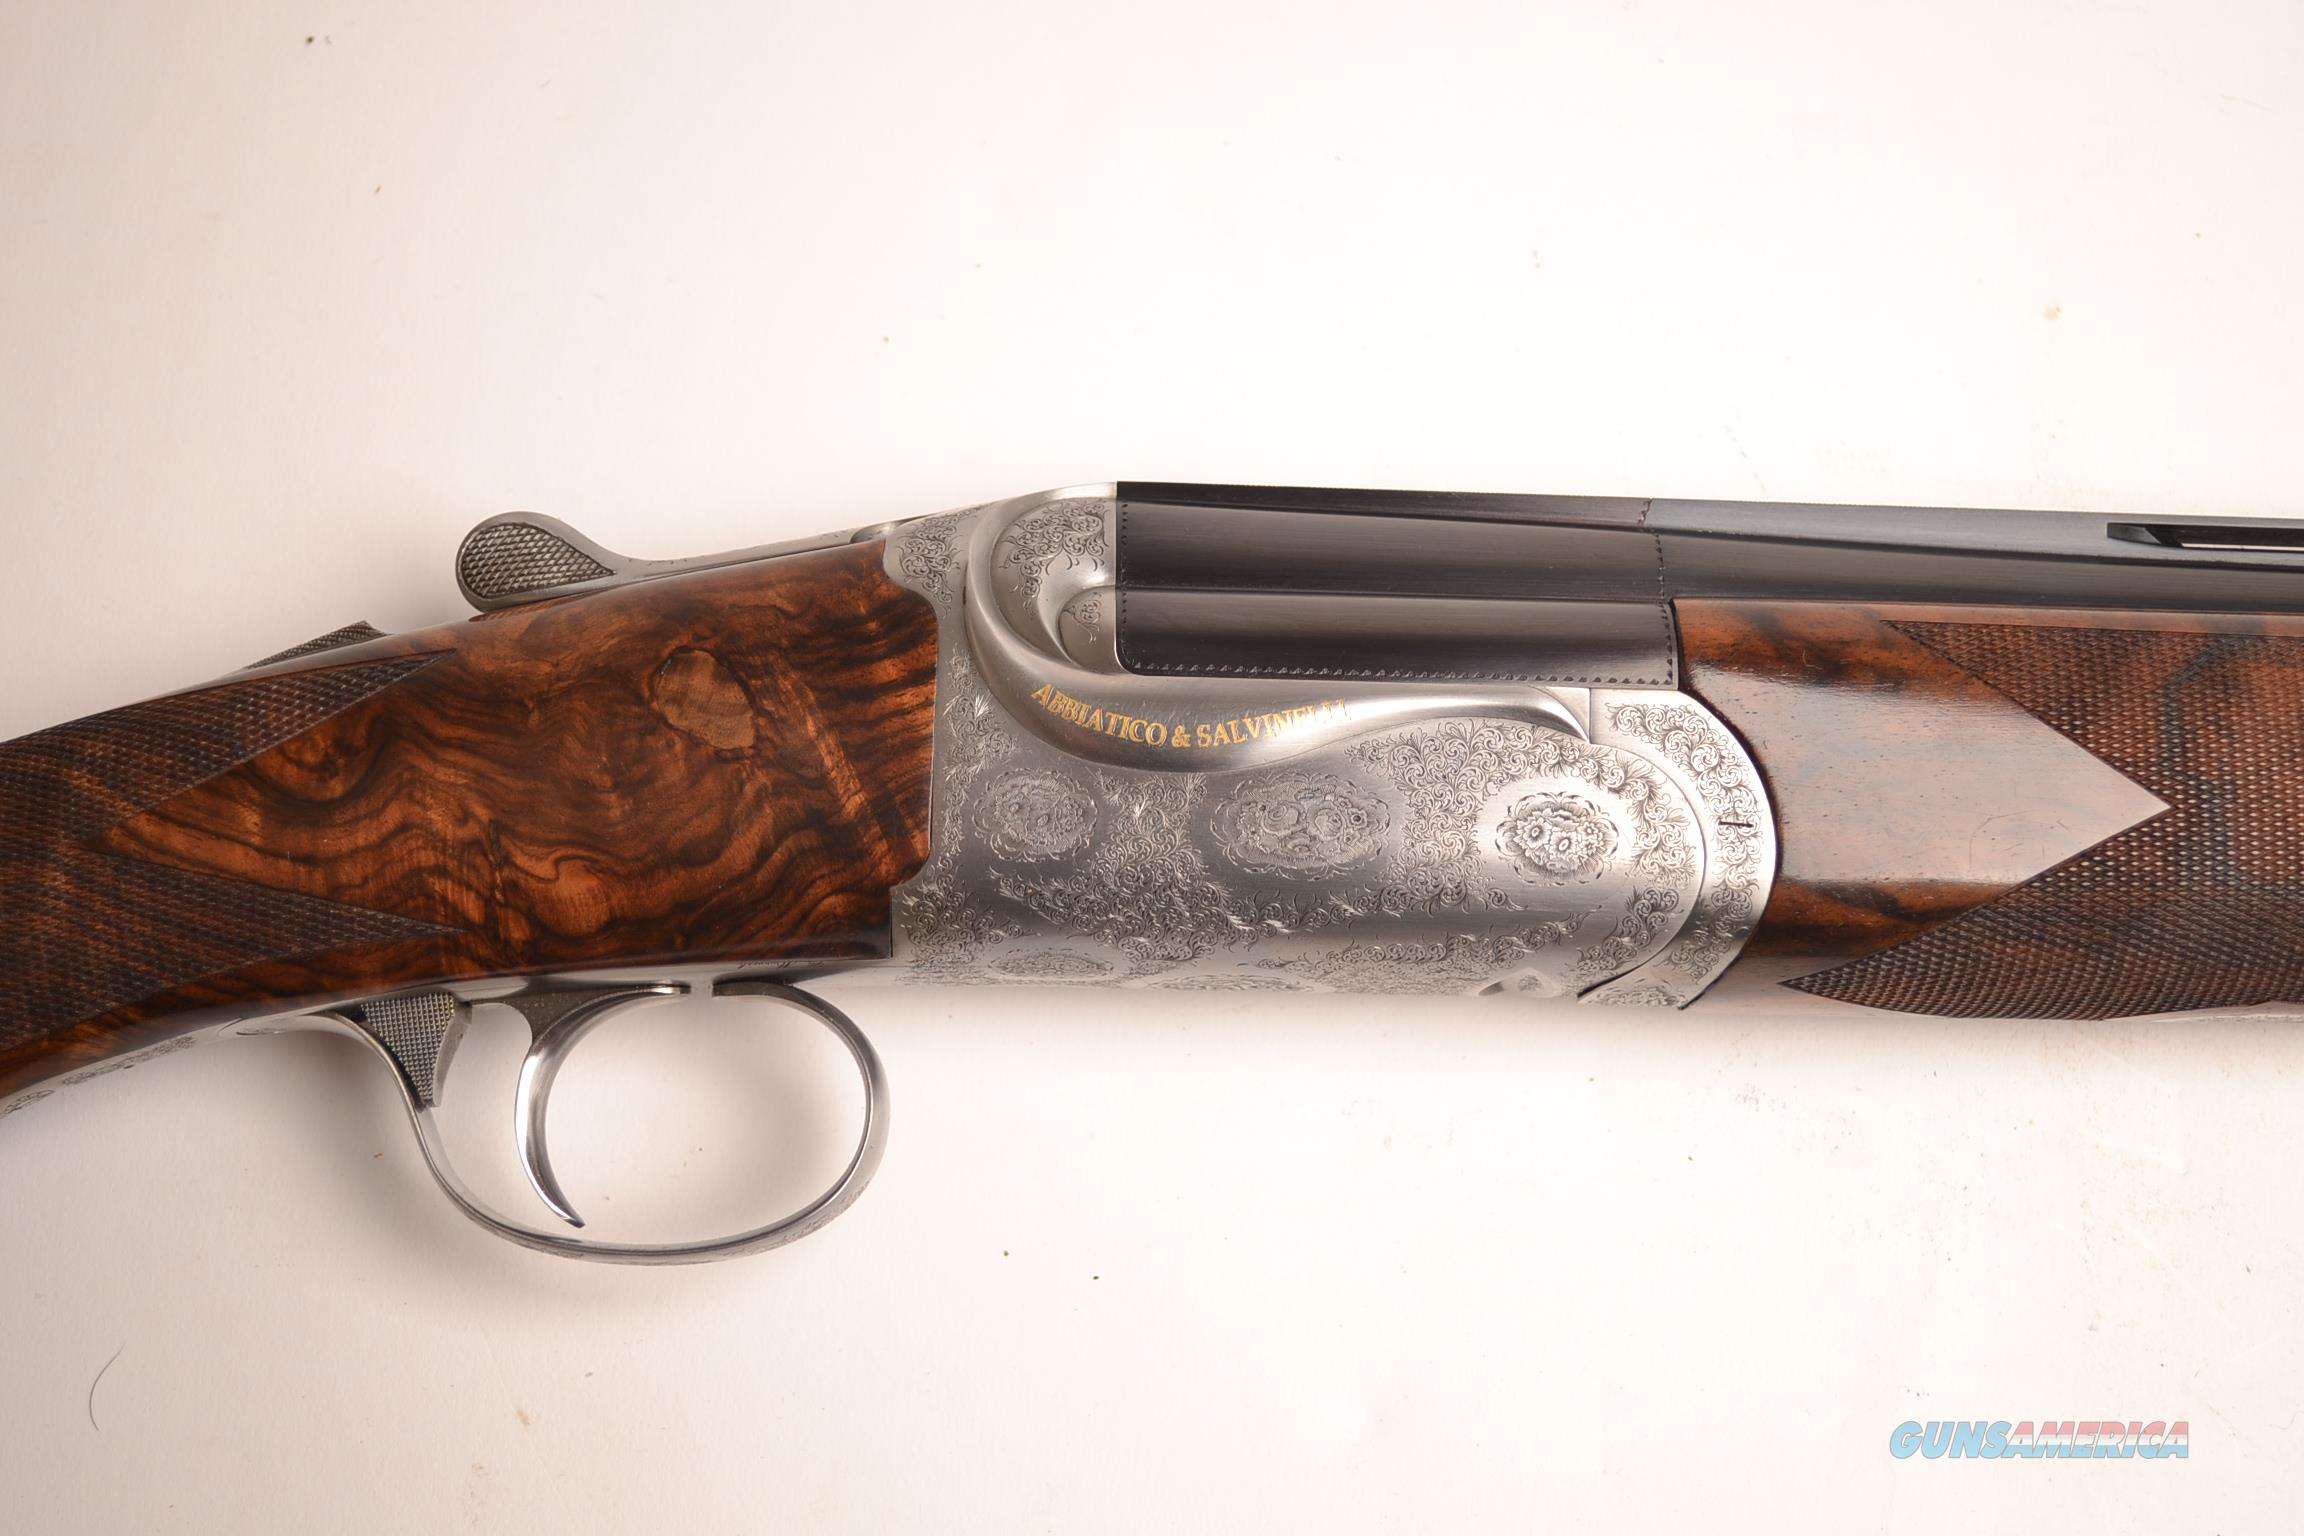 A&S Famars - Excalibur Dove  Guns > Shotguns > Famars Shotguns